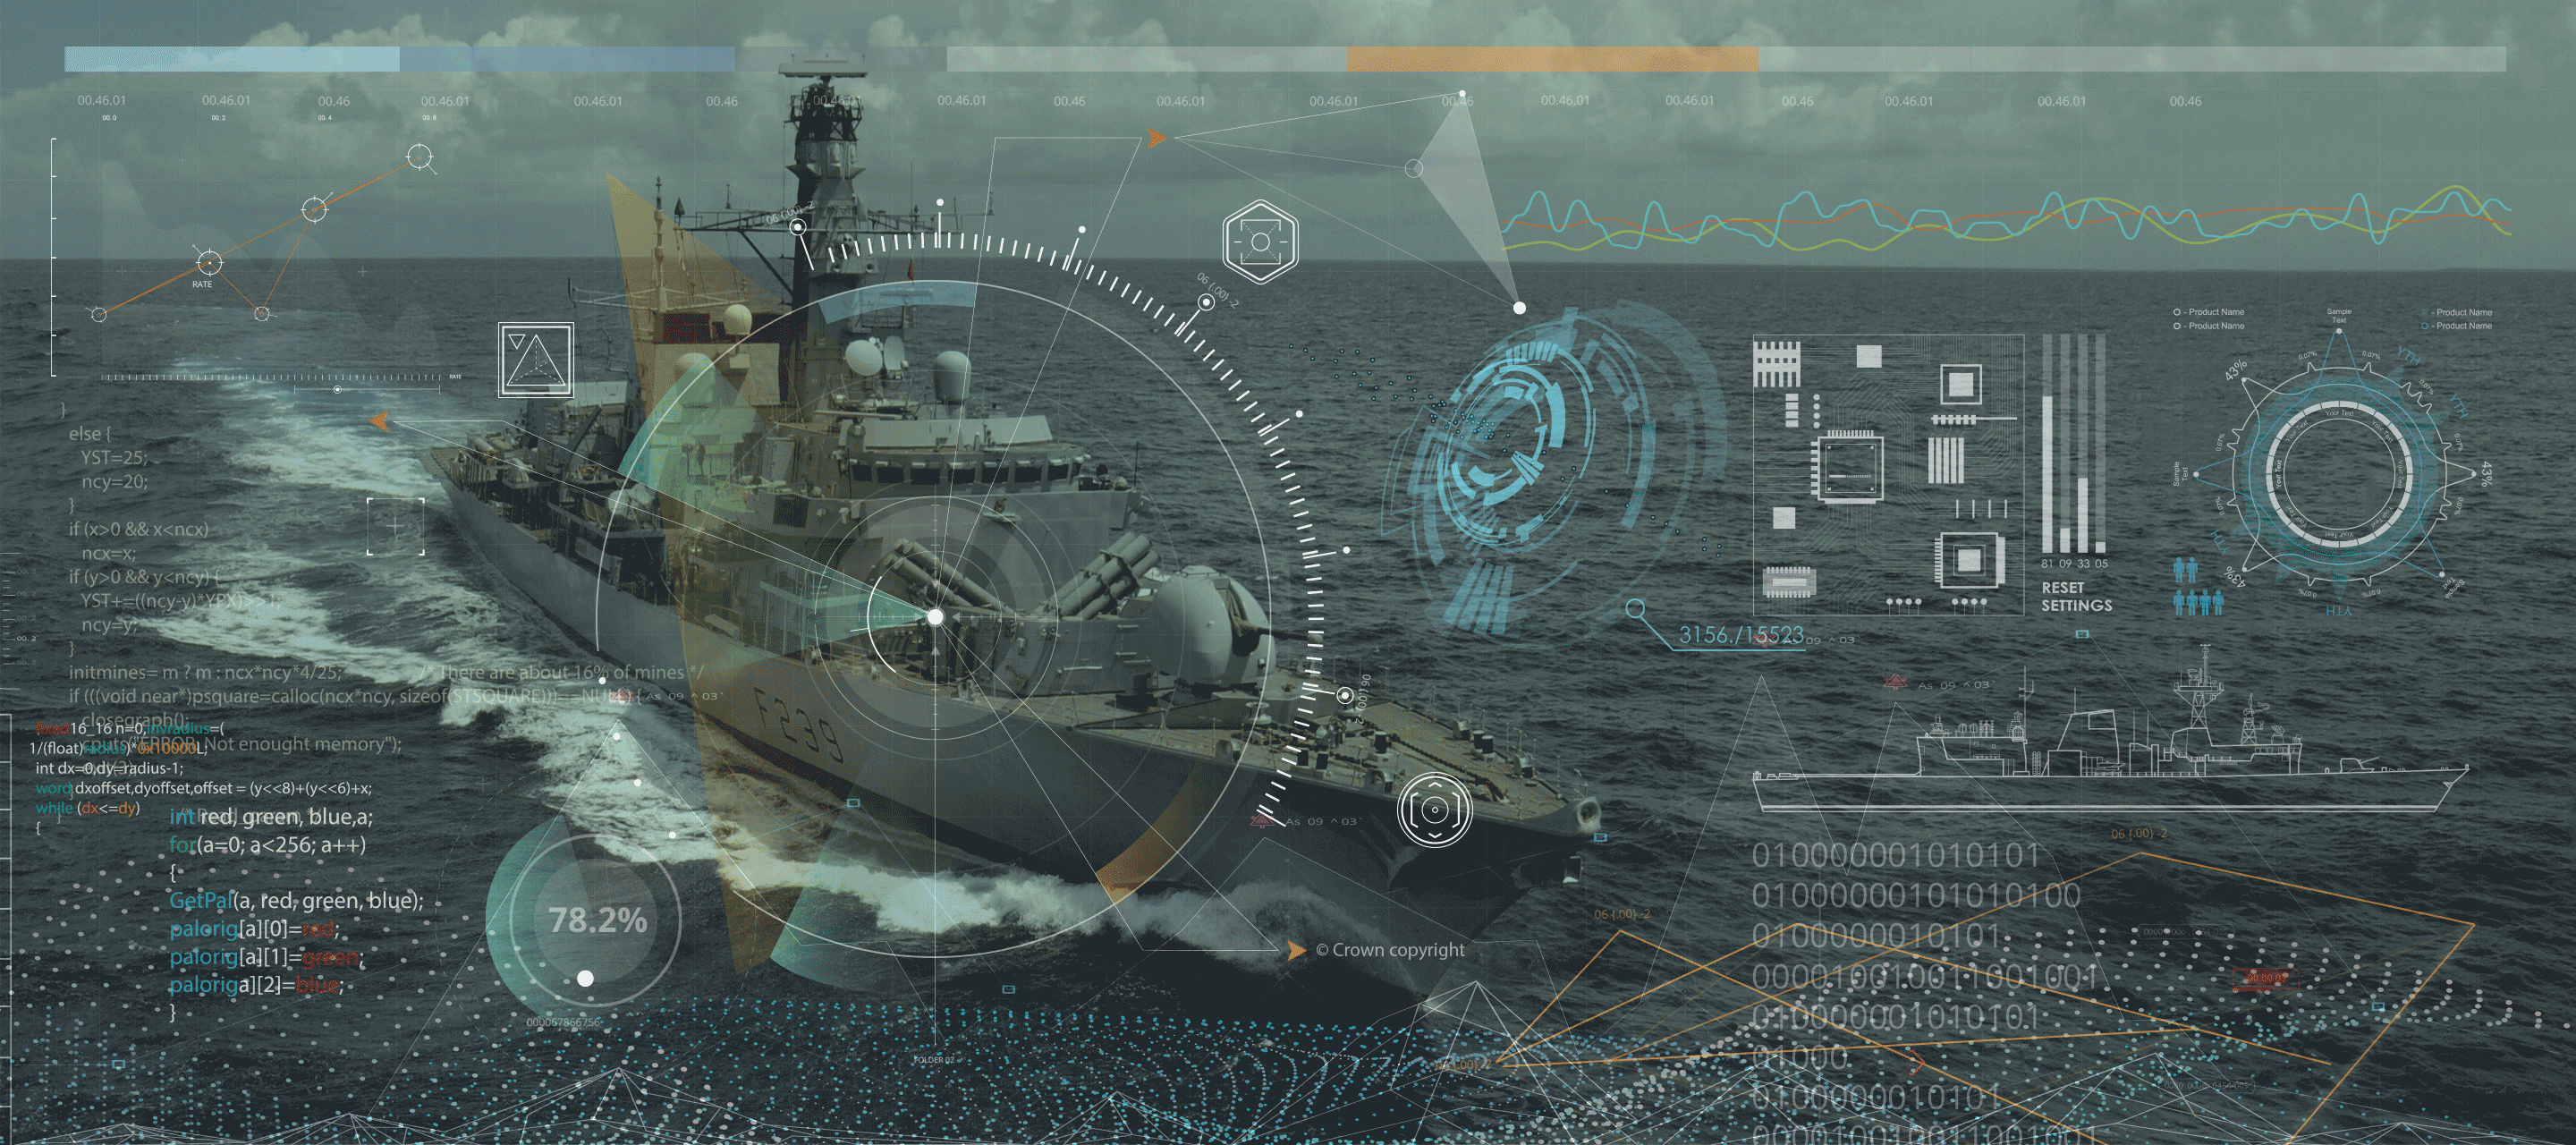 Testing emerging technologies for live naval combat